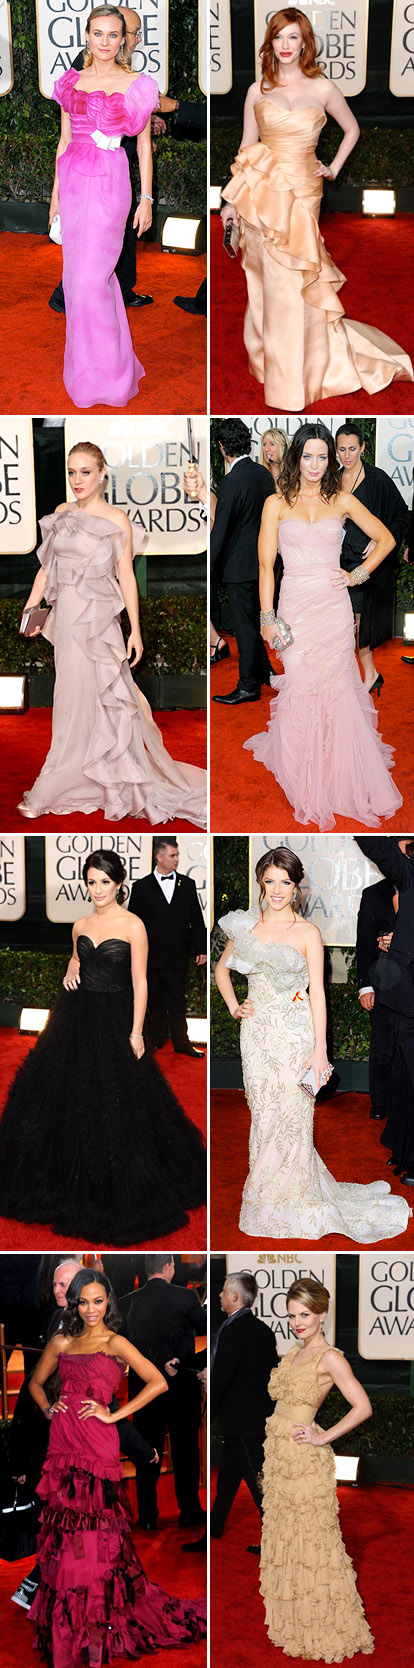 ruffled evening gowns from the 2010 golden globe red carpet